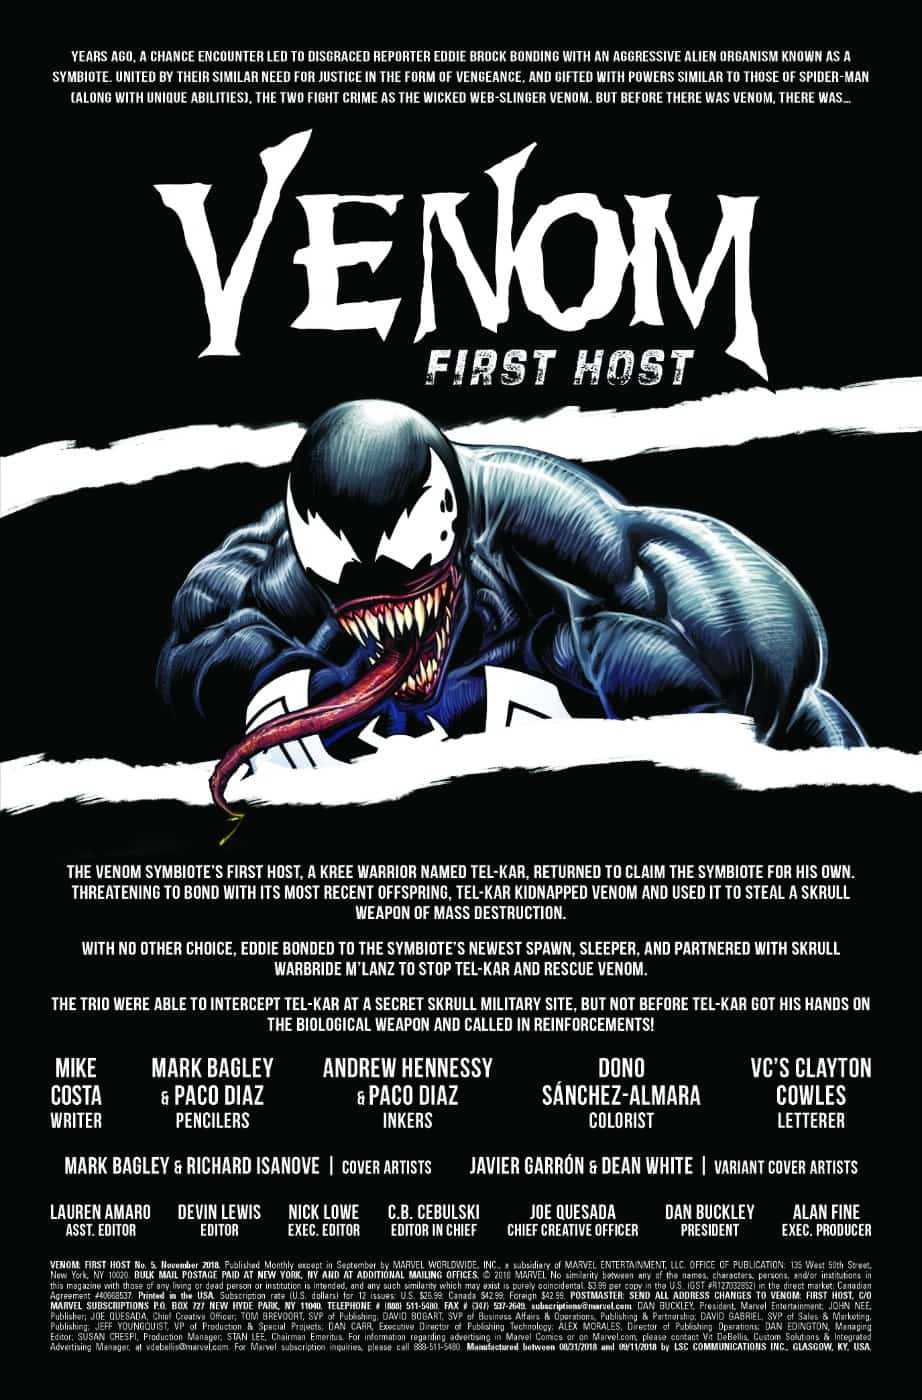 VENOM: FIRST HOST #5 page 2